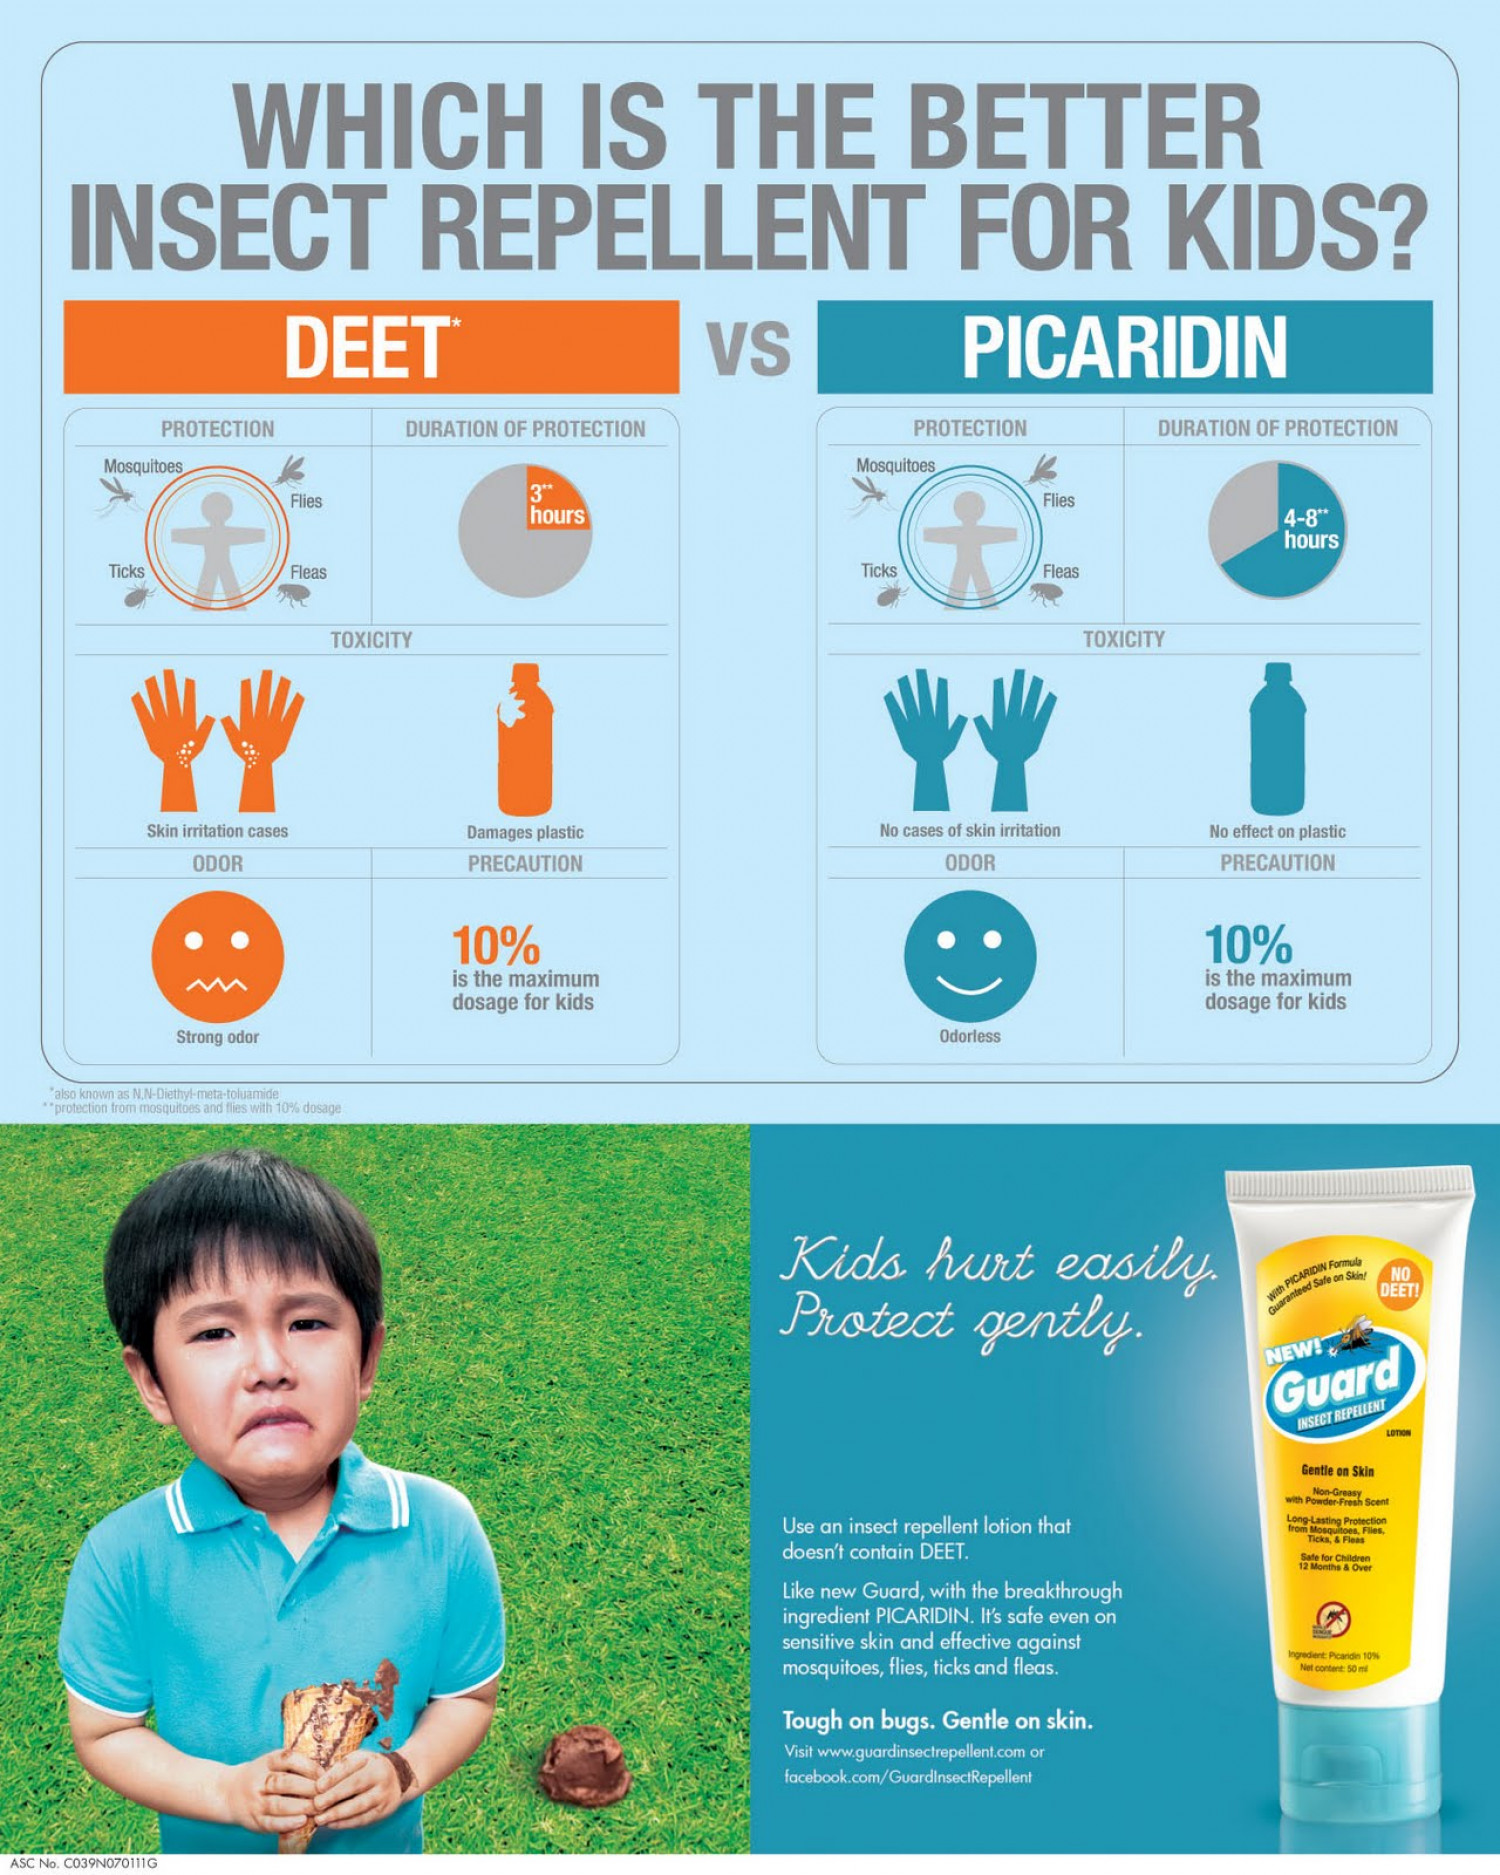 Which Is Better Insect Repellent For Kids